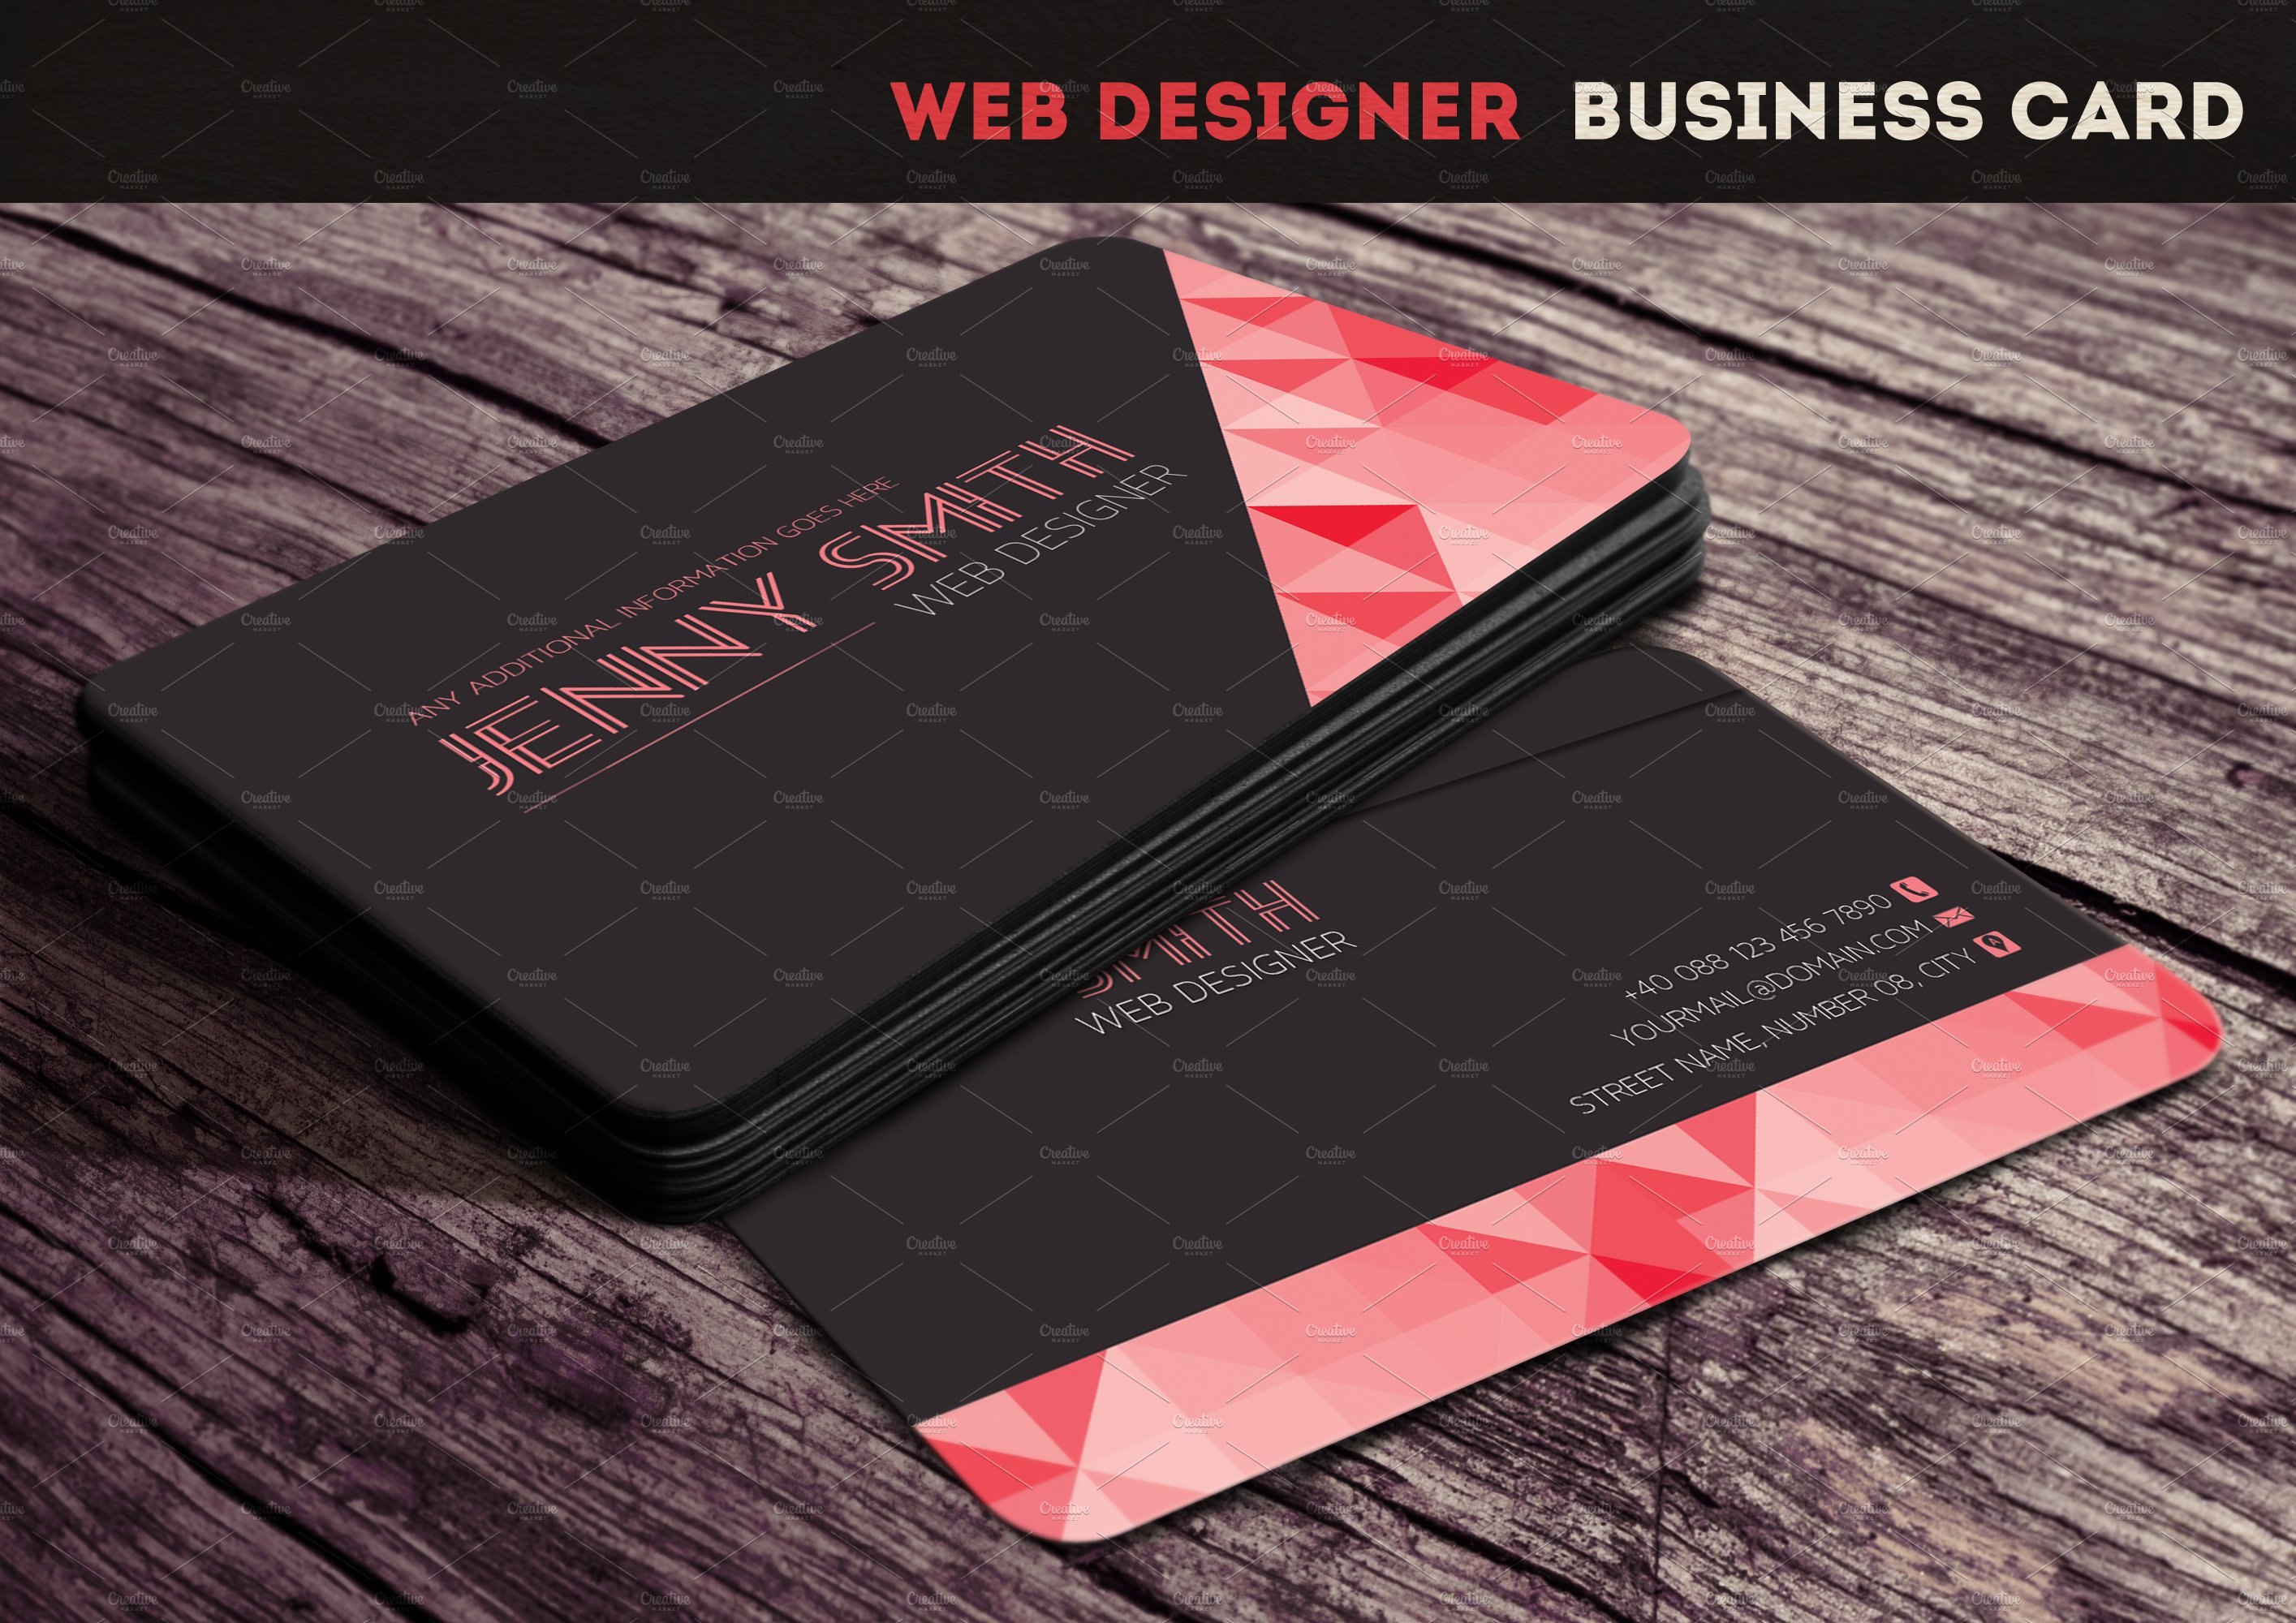 Web Designer Business Card ~ Business Card Templates ~ Creative Market